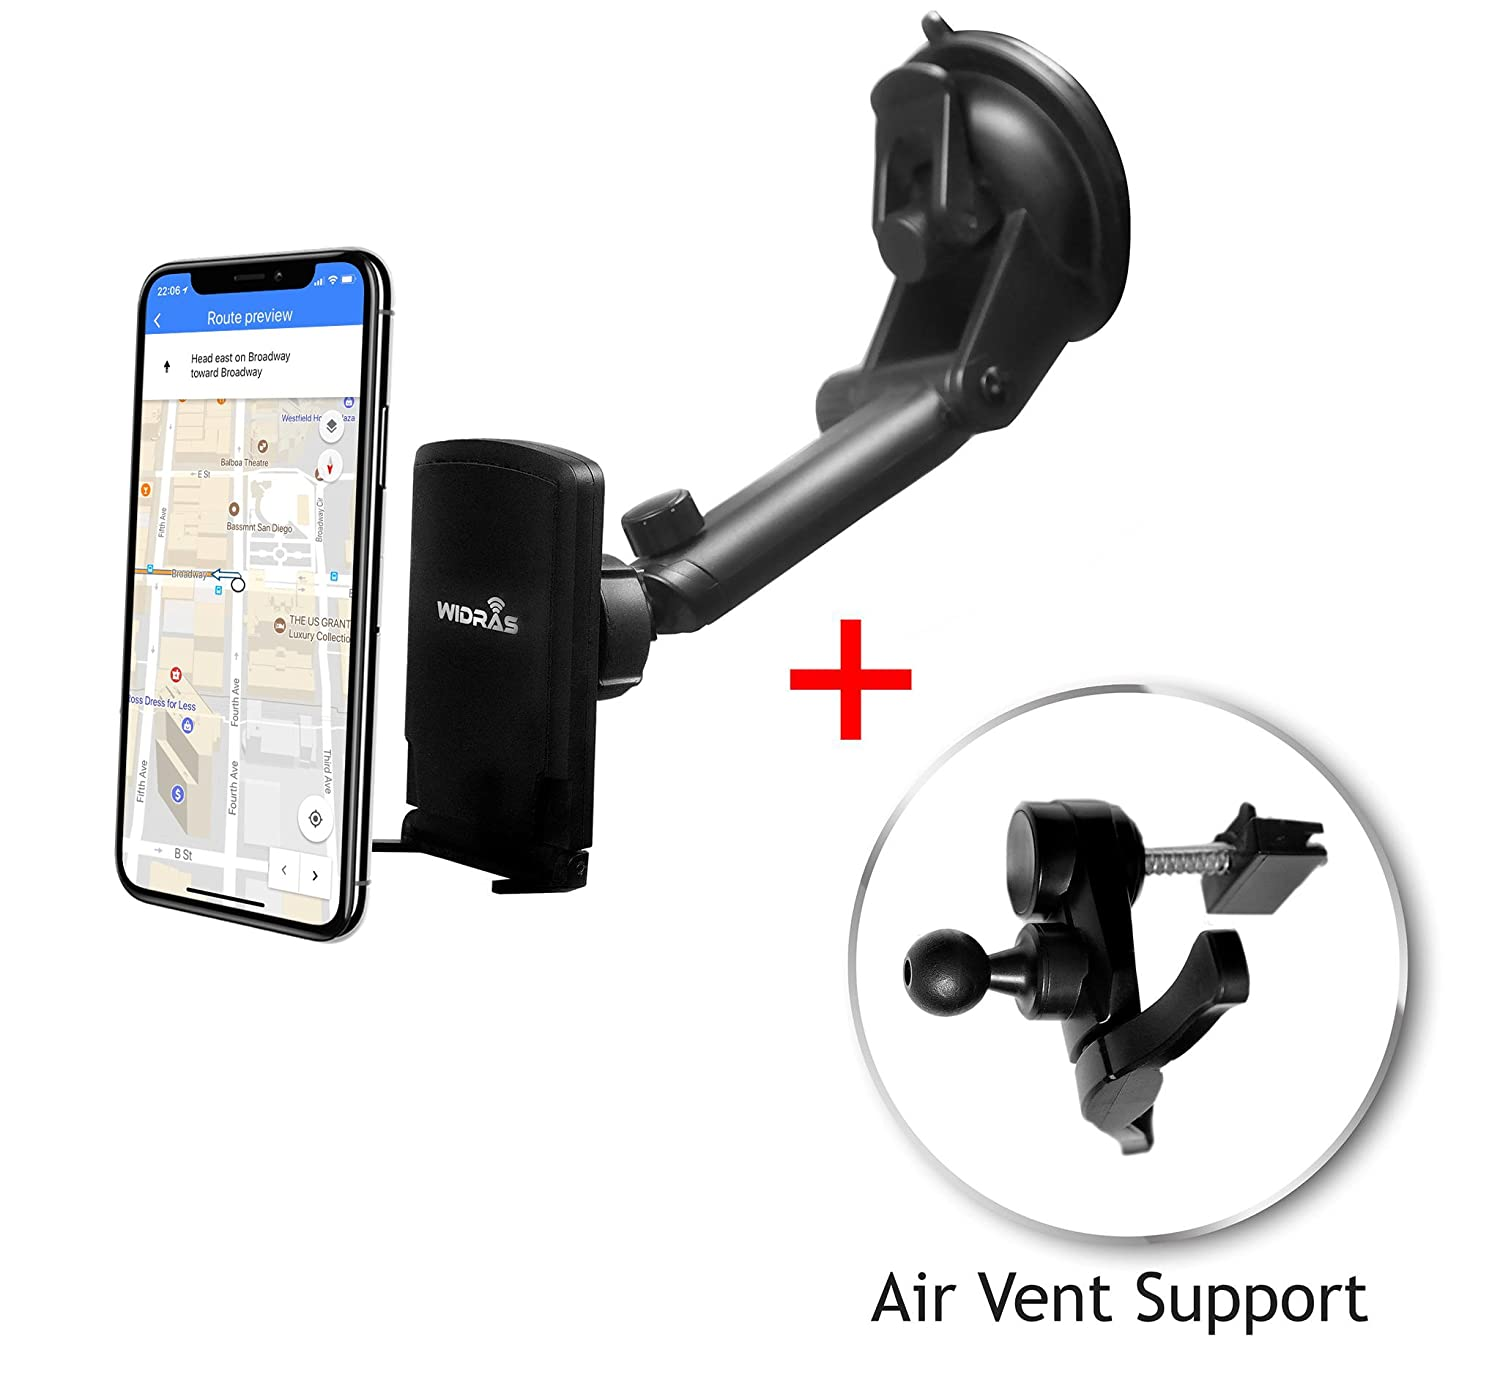 Widras Windshield//Air Vent 2in1 Magnetic Car Mount Universal Phone Holder Window Cradle for Smartphone//Tablet Washable Strong Pad iPhone X 8 7 7 6 X 5 5s Plus Galaxy S8 S7 S6 S5 Edge Note Nexus S Magnet